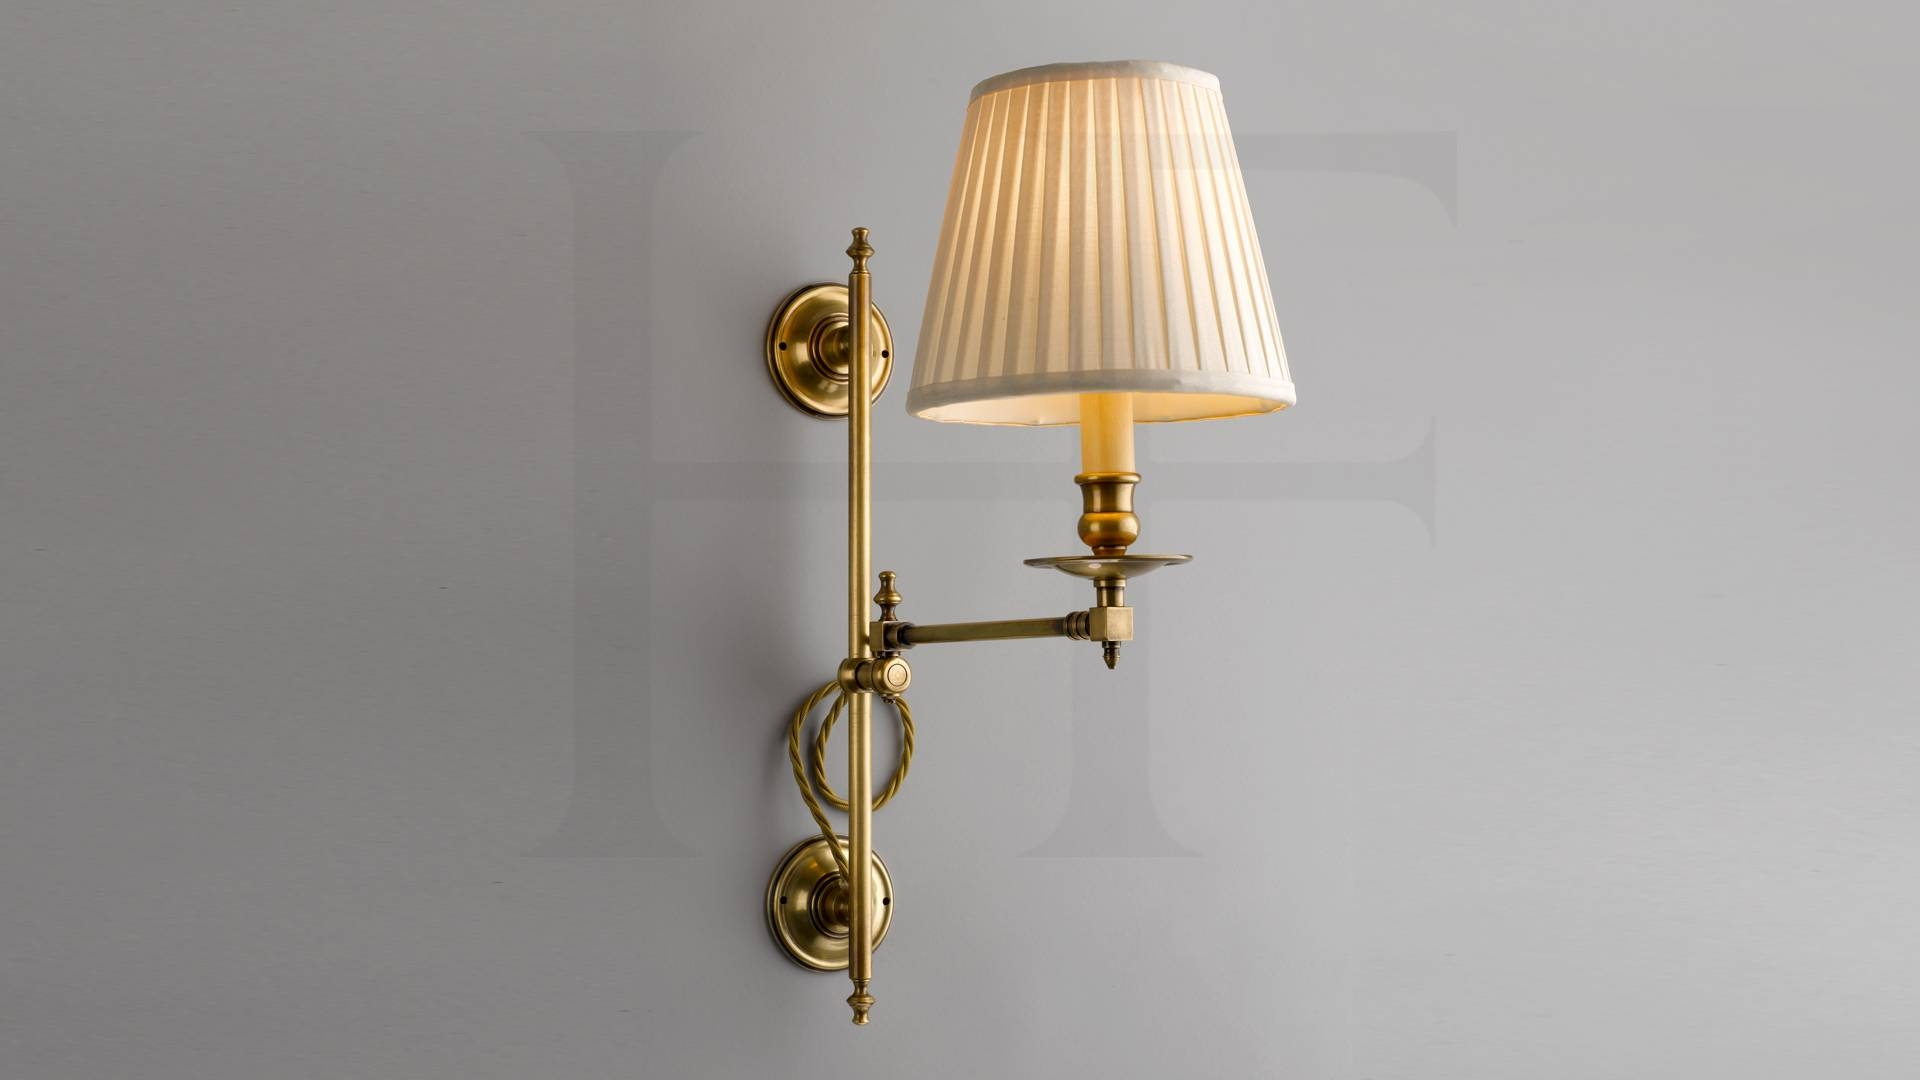 Trend Hector Finch Wall Lights 89 With Additional Wall Light regarding John Lewis Lights Shades (Image 14 of 15)